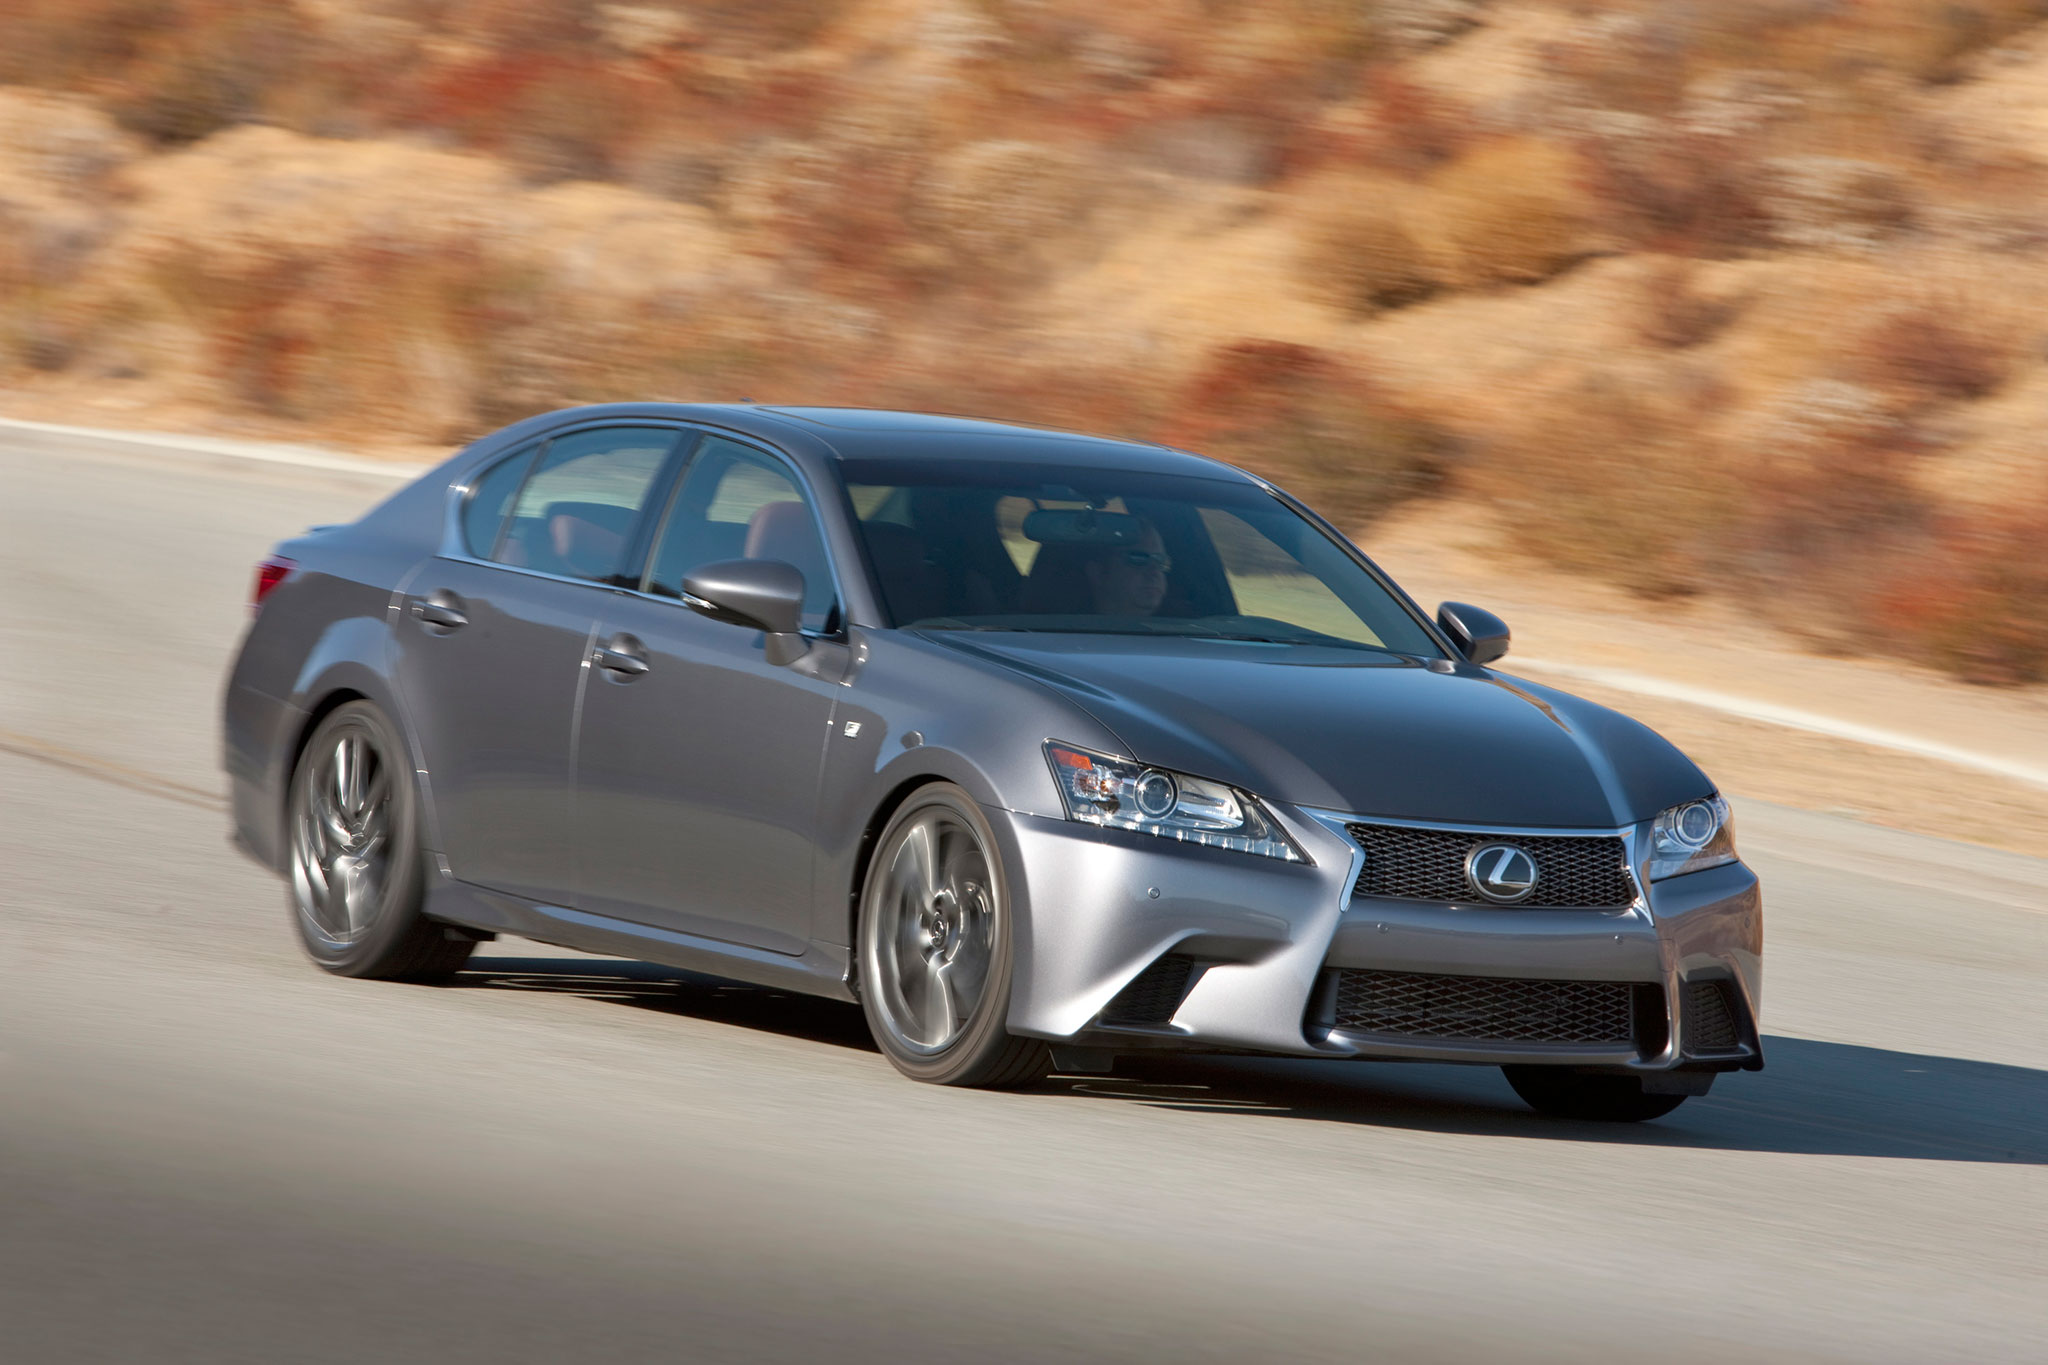 https://st.automobilemag.com/uploads/sites/10/2015/09/2013-lexus-GS-350-F-sport-three-quarters-view-18.jpg